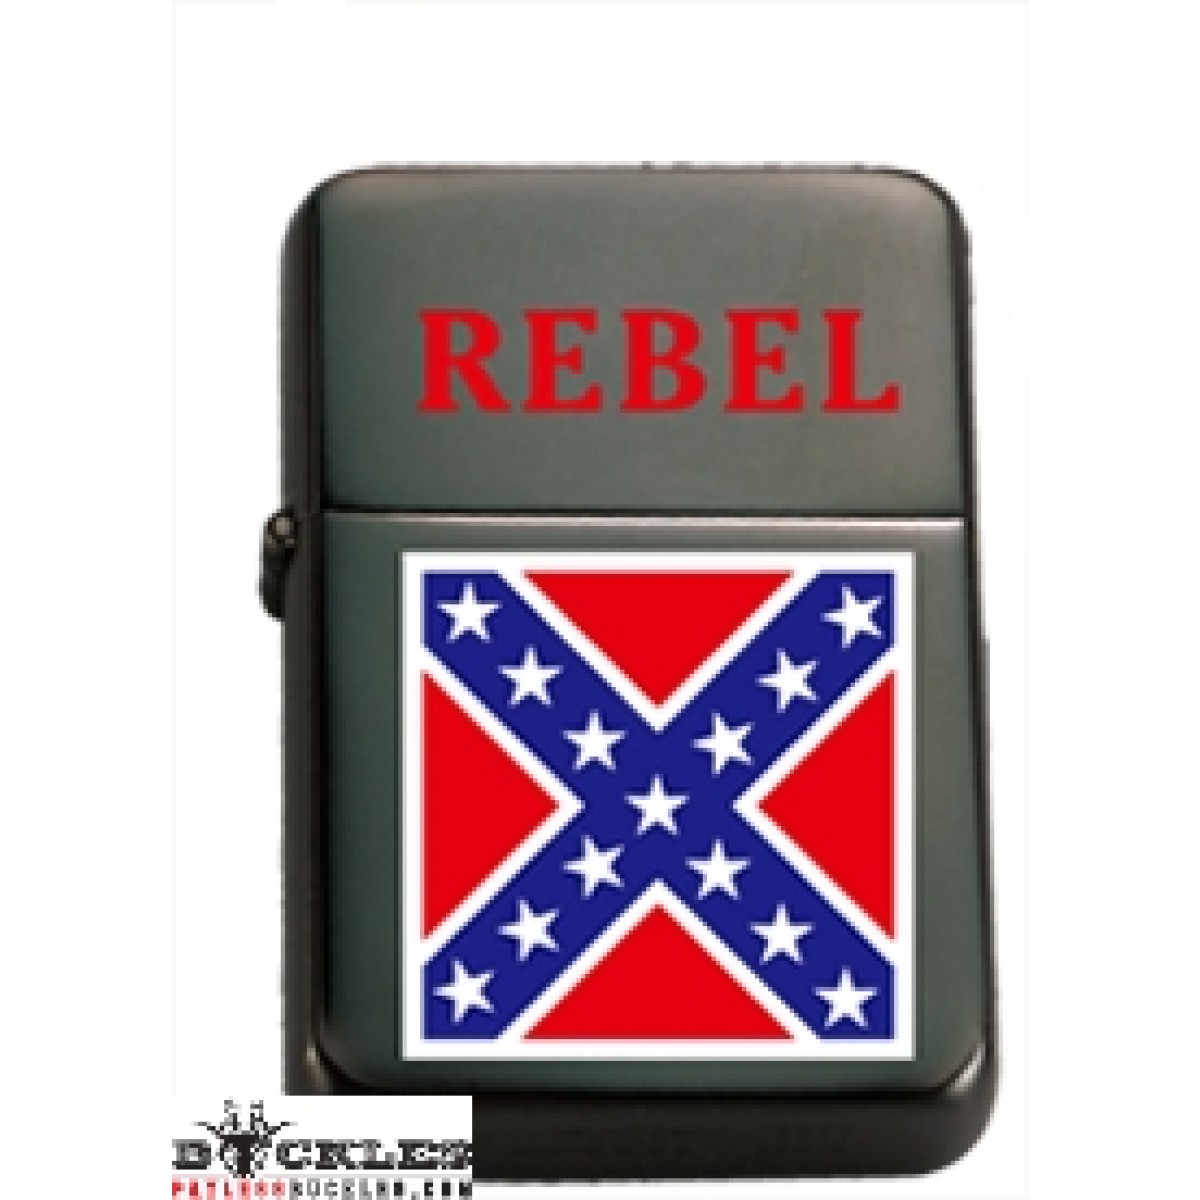 wholesale confederate cigarette lighters   rebel flag